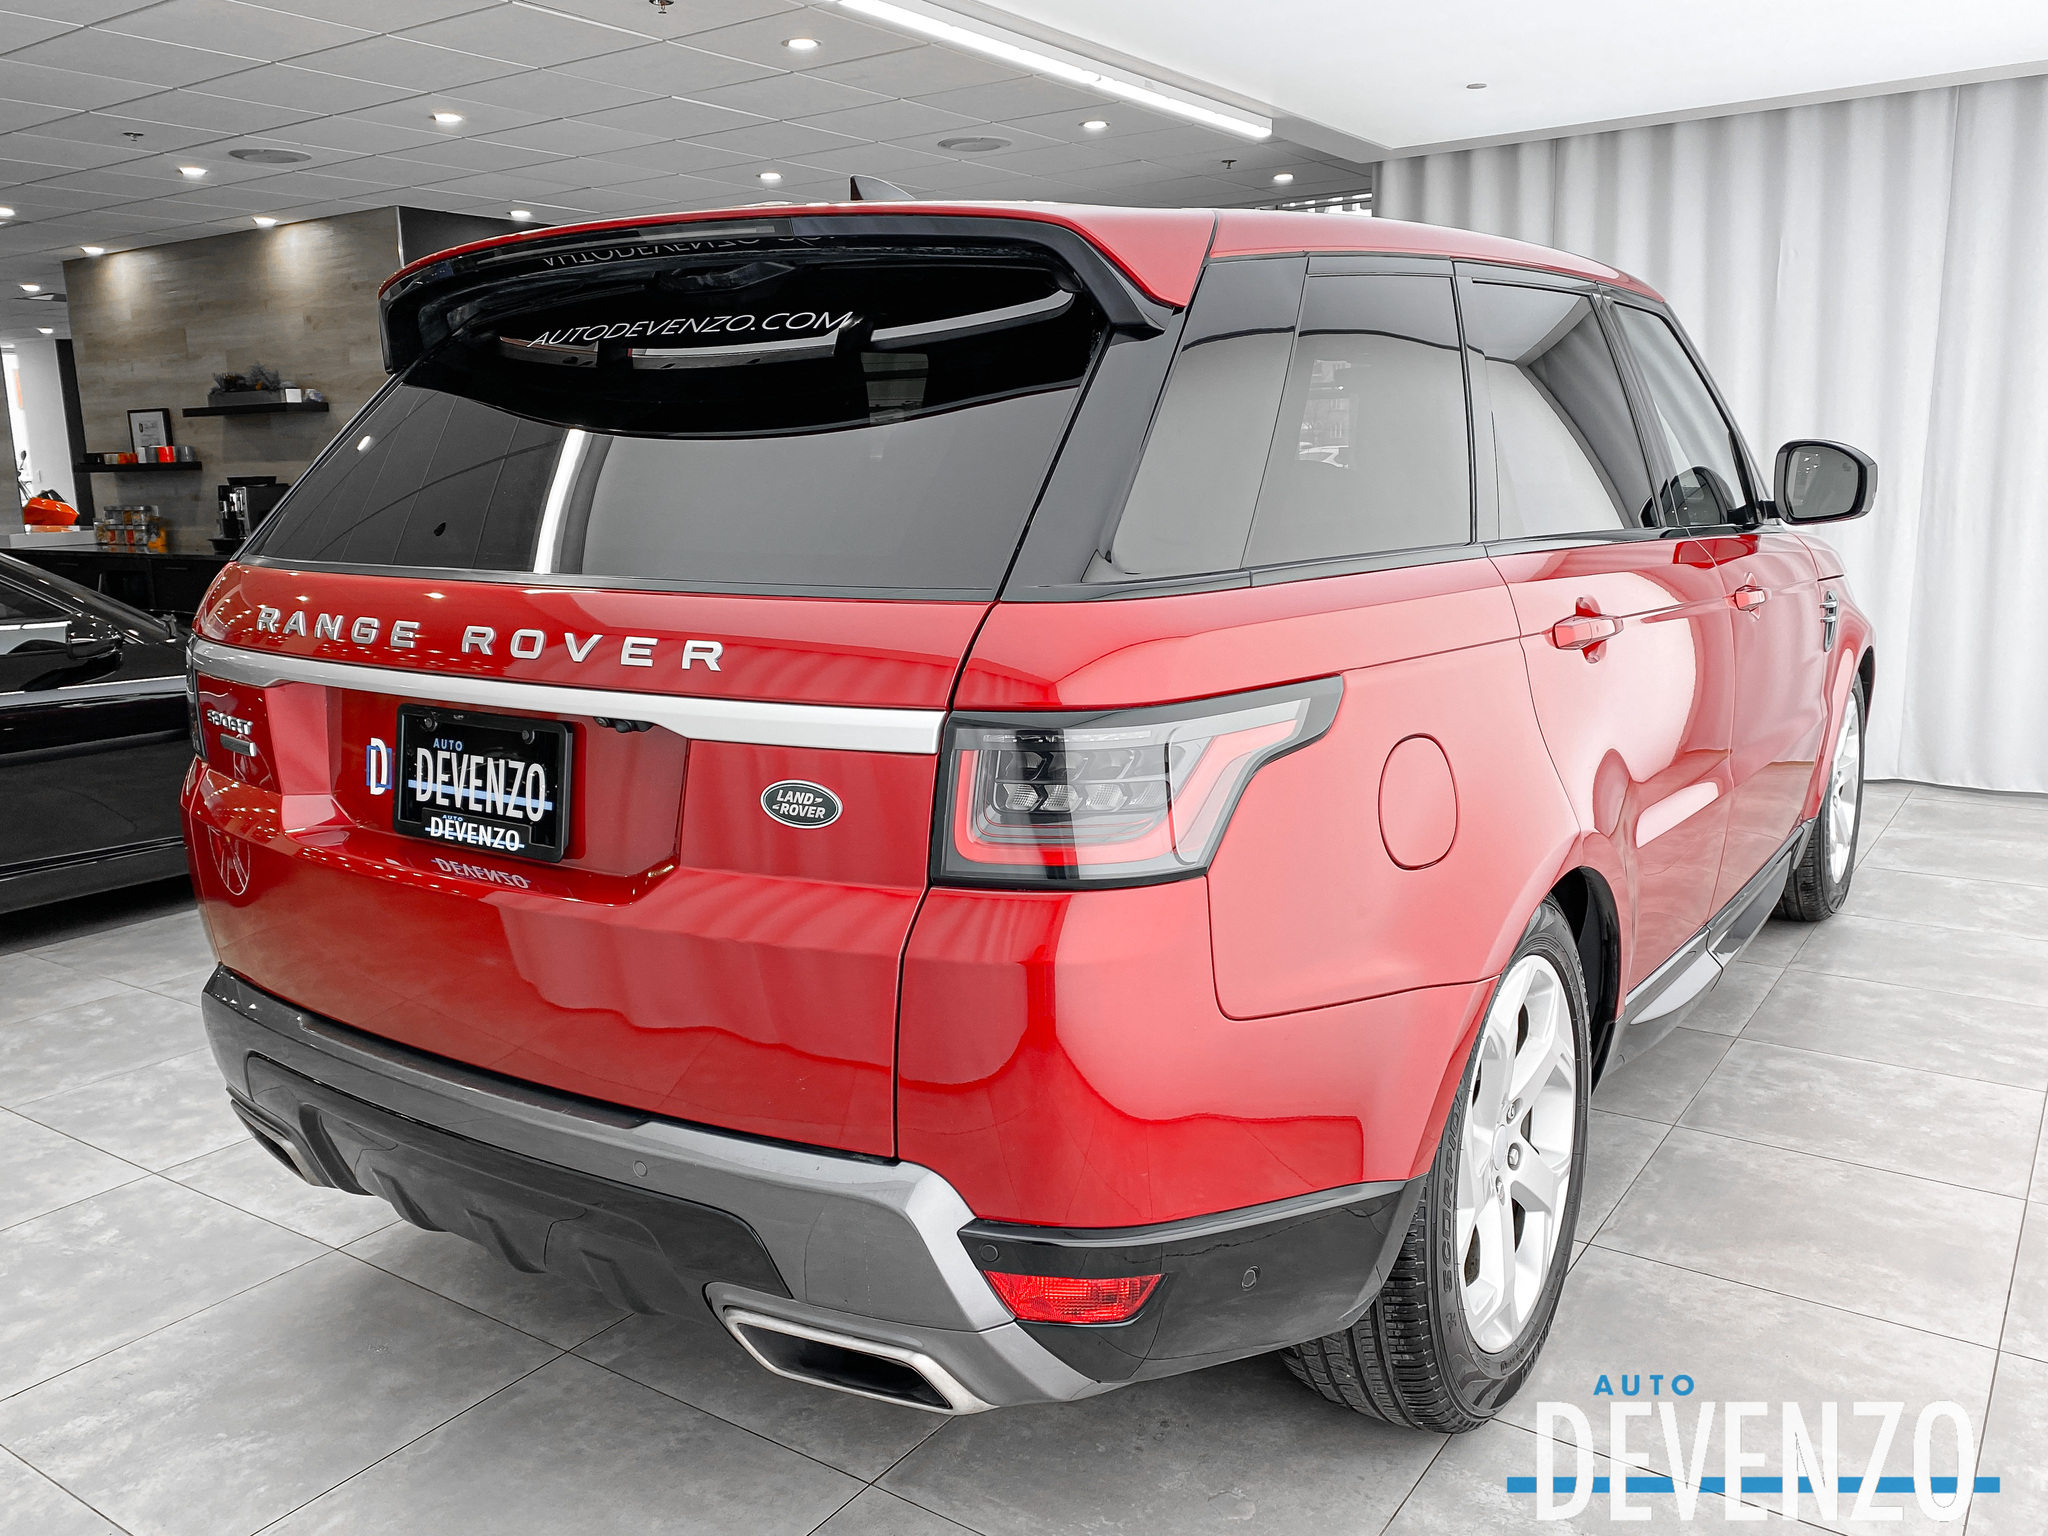 2018 Land Rover Range Rover Sport HSE V8 Supercharged 518HP DRIVE PRO PACK complet